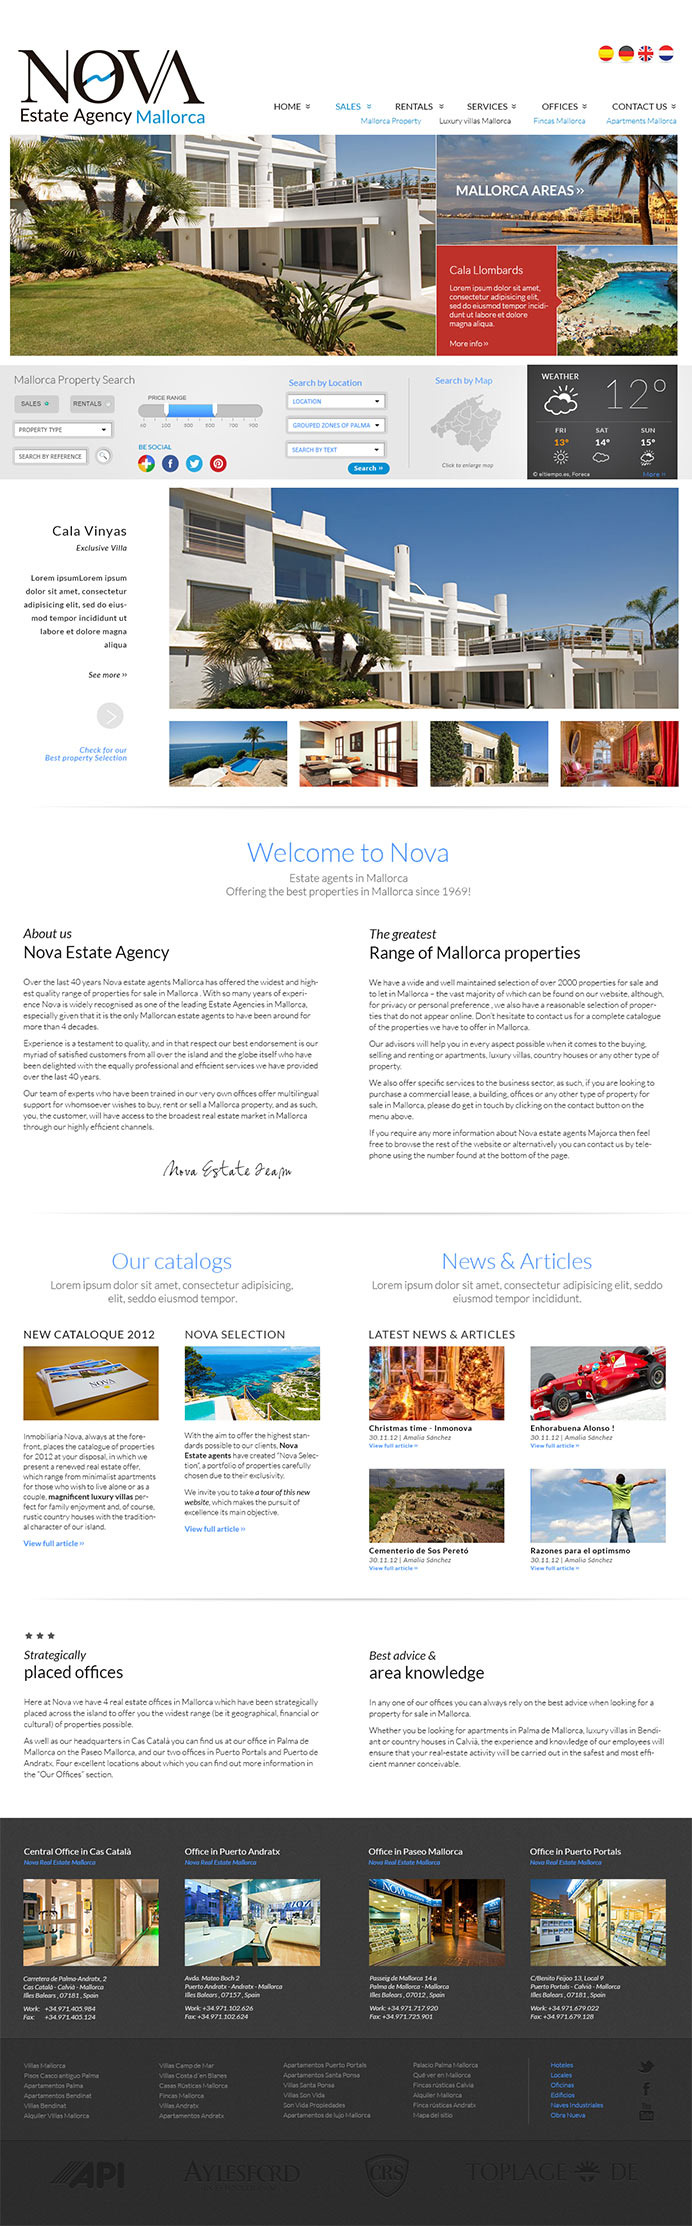 Modern website design for real estate agency in Mallorca